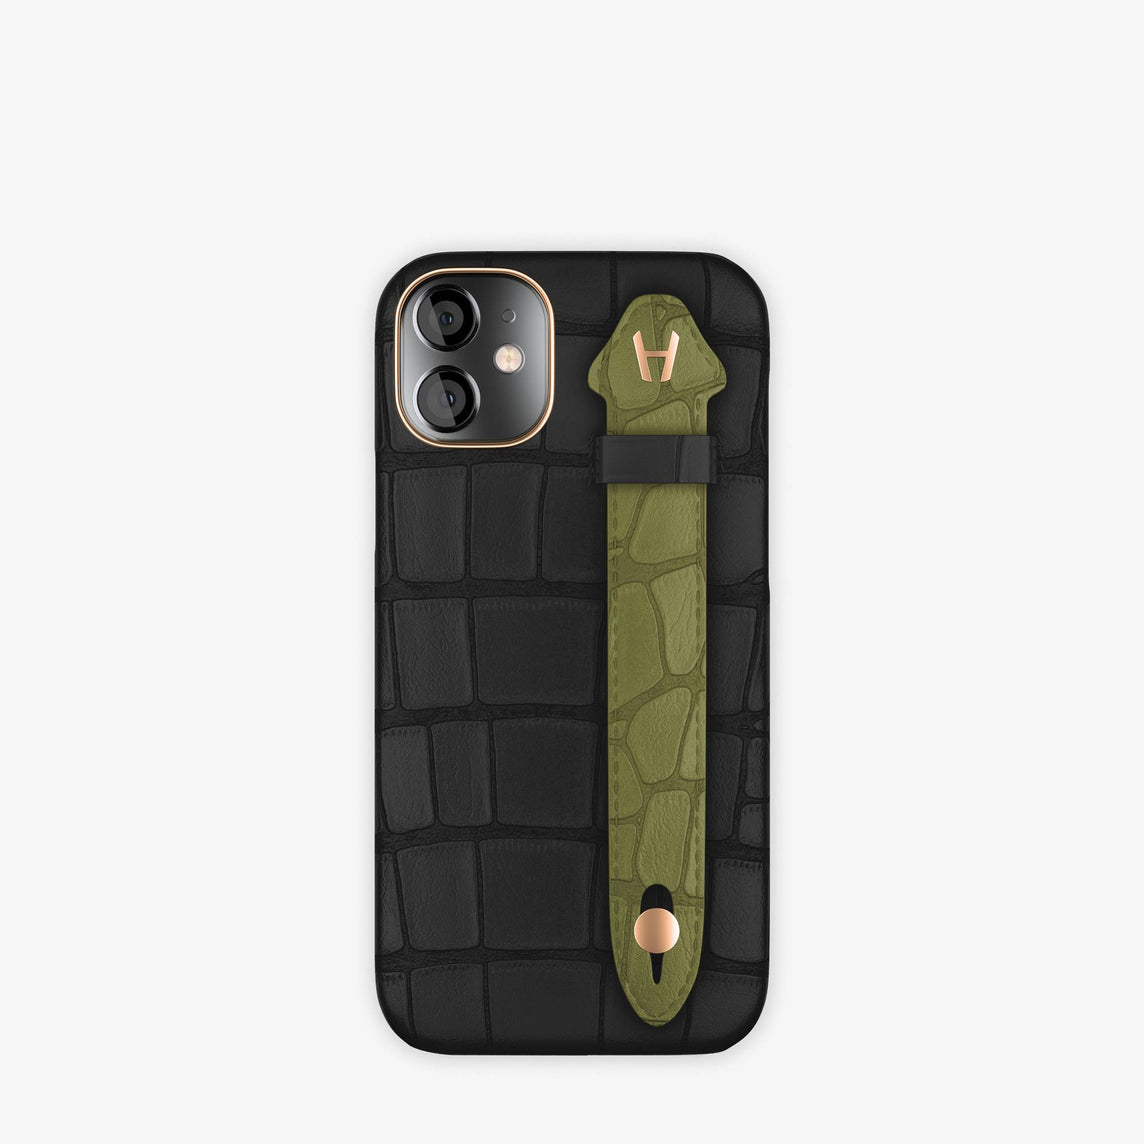 Alligator Side Finger Case iPhone 12 Mini | Black/Khaki -Rose Gold